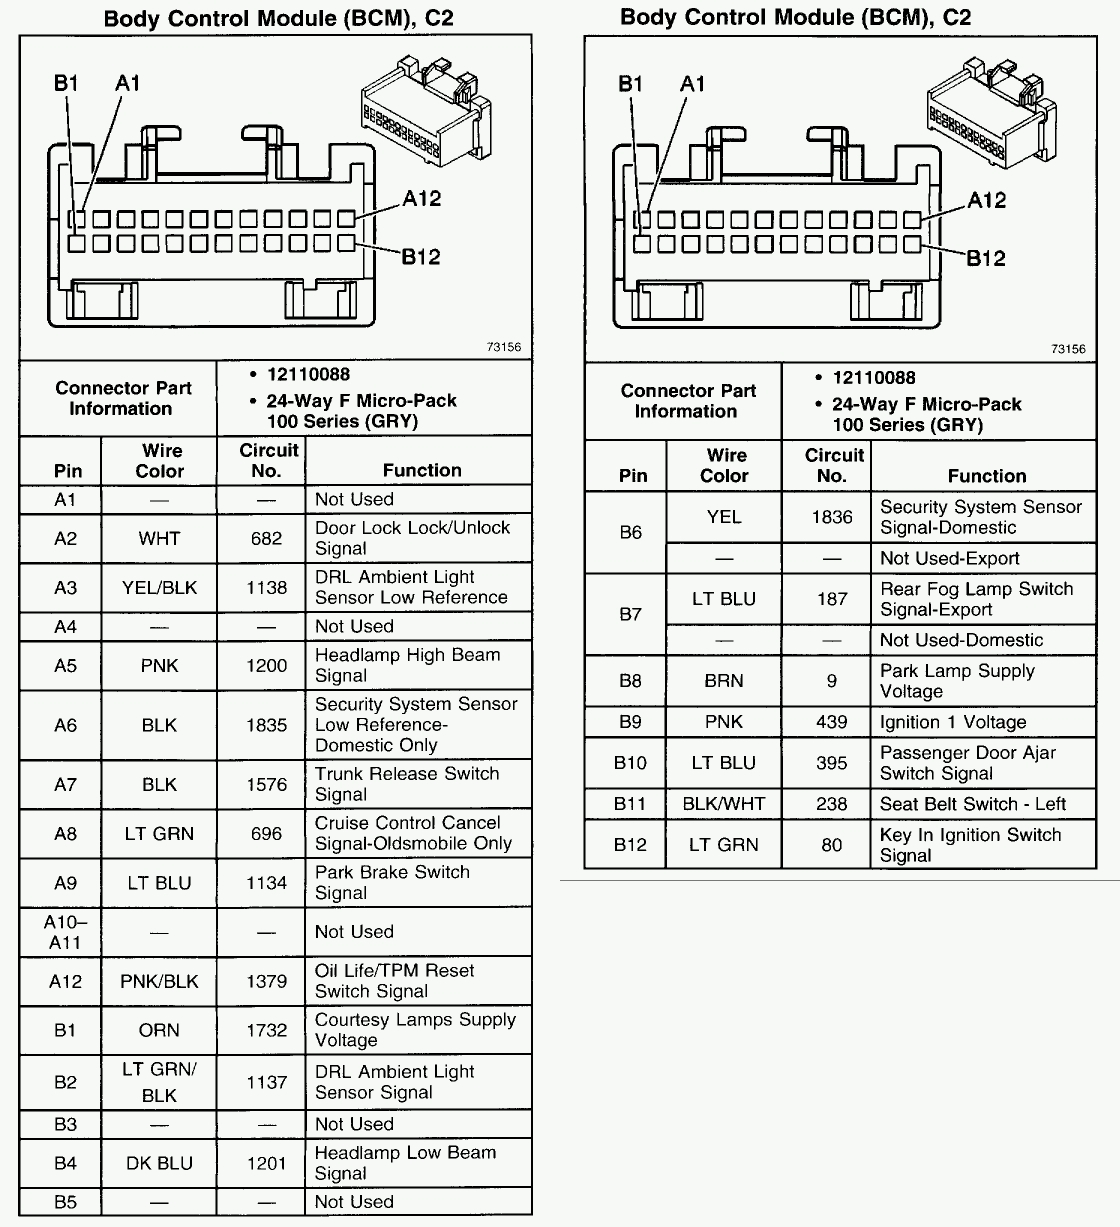 1990 nissan 240sx engine wiring diagrams with 1991 Nissan 240sx Fuse Box Diagram Html on P 0900c152800764a9 likewise Nissan D21 Z24i Wiring Diagram additionally Fan Belt Diagram 1986 D150 Dodge additionally 4ob7l Nissan Pulsar High Beams Low Beam Wiring Diagram The Headlights also Car Parts.